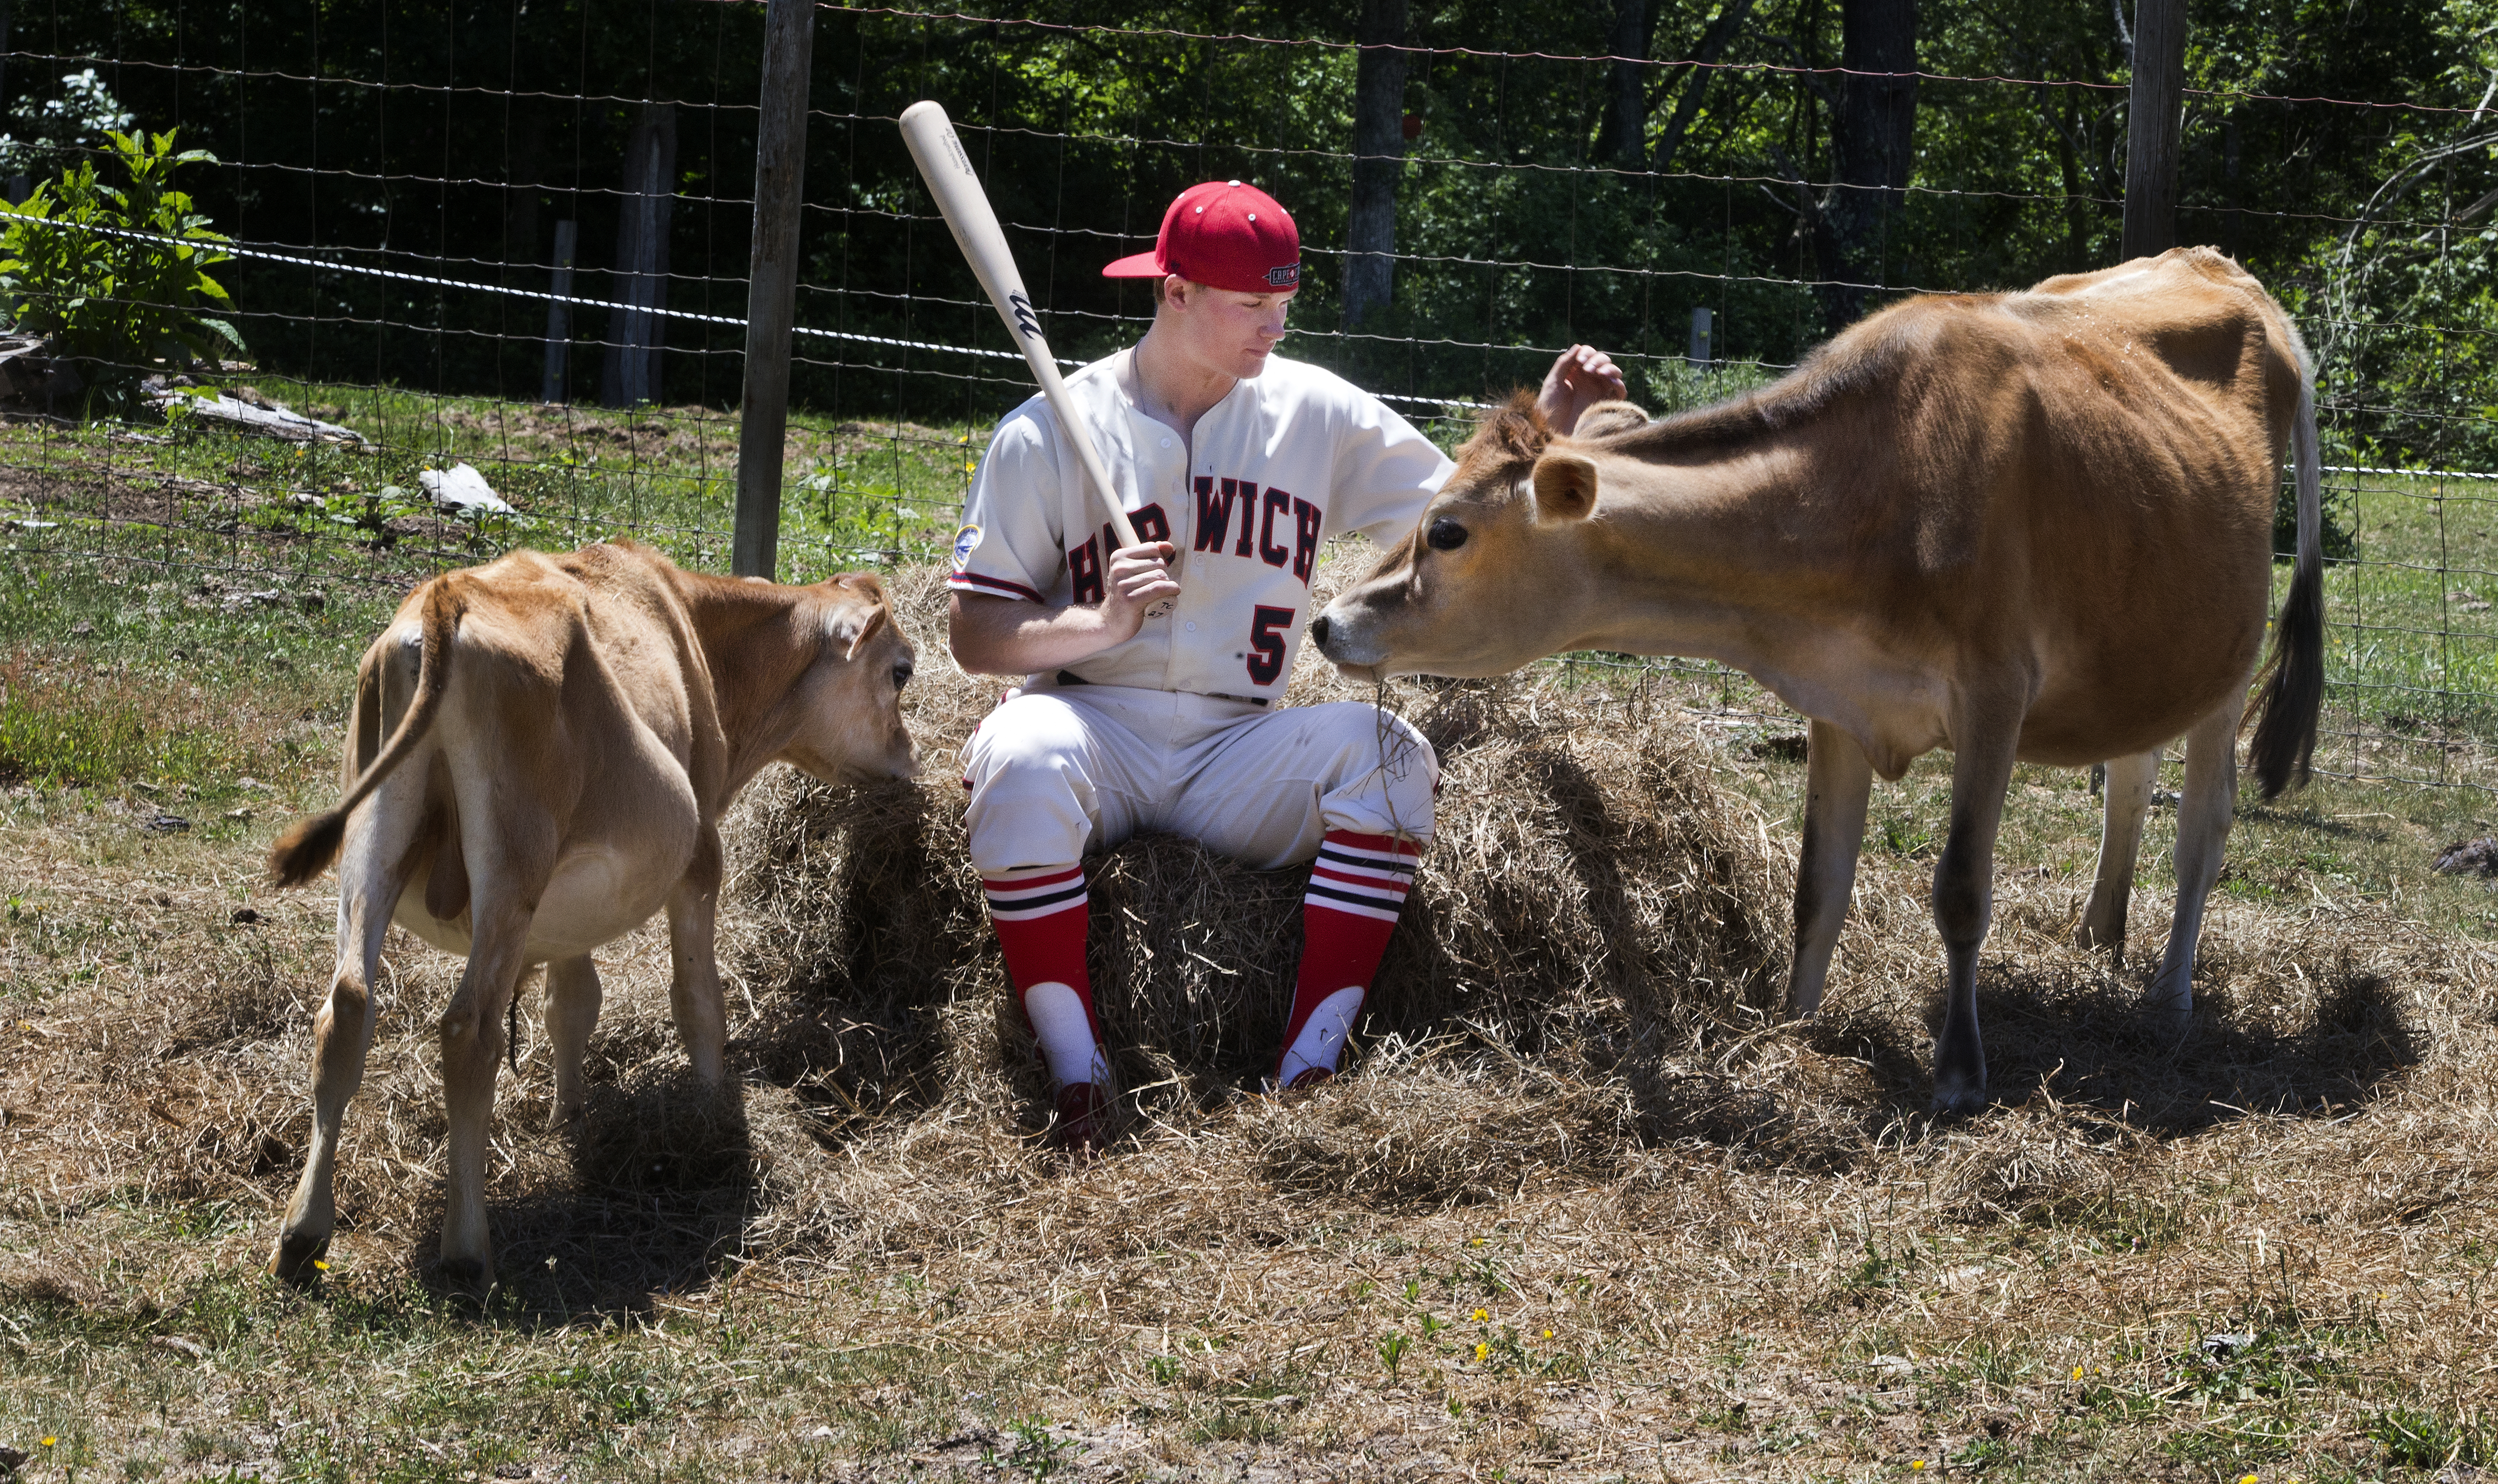 Ian Happ, from the University of Cincinnati, hangs out with the cows on the Crafts Farm in Harwich Port before heading to a Cape Cod League game